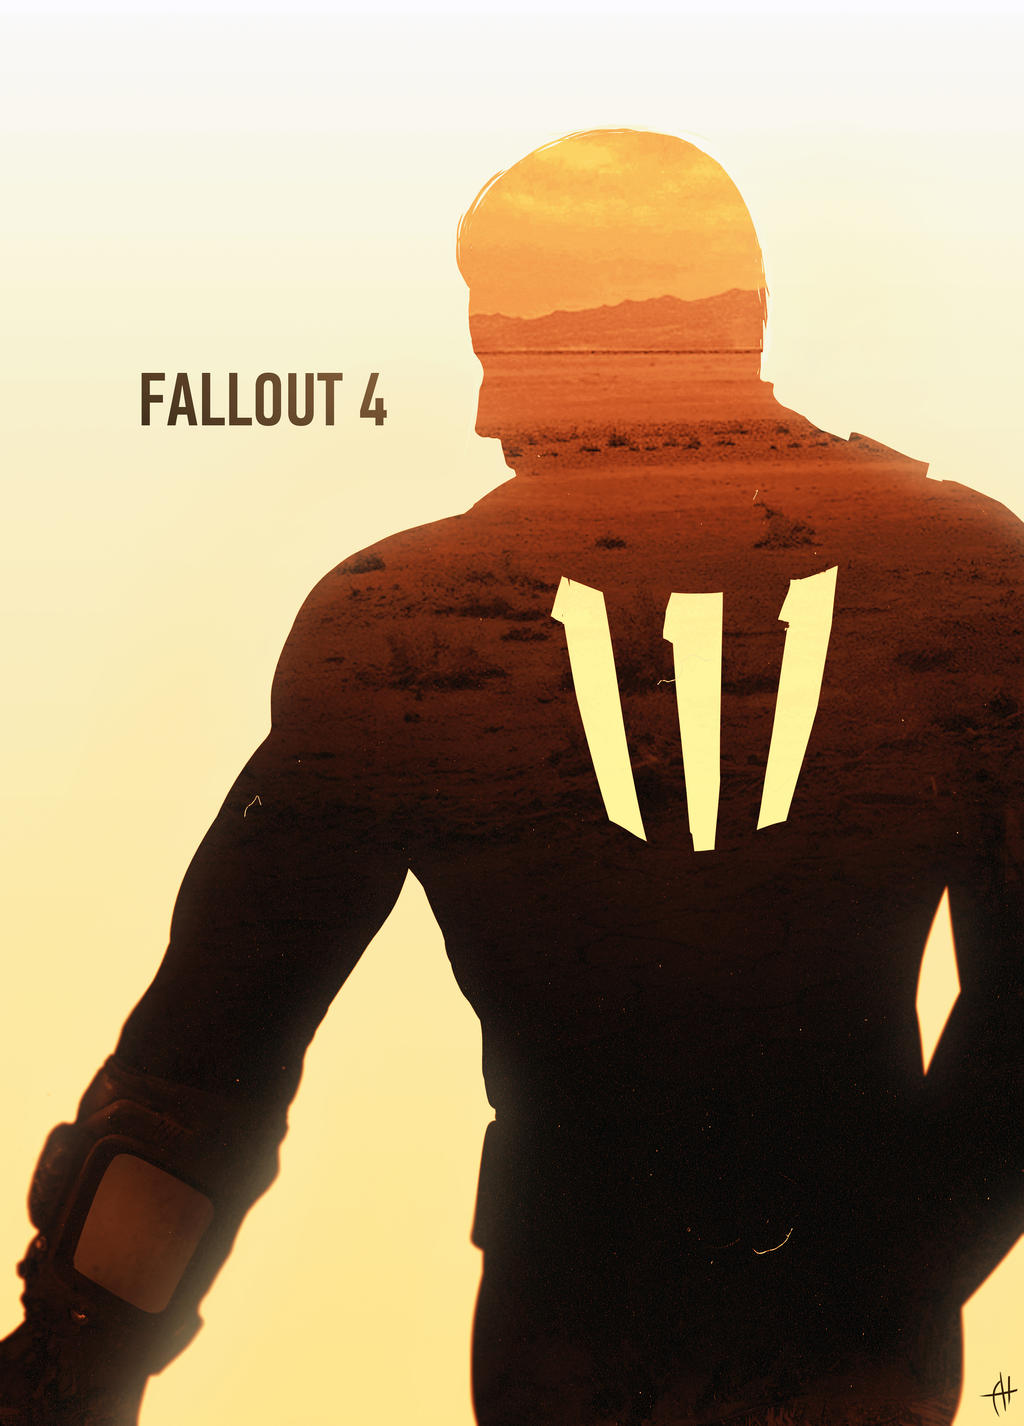 Download Fallout 4 Vault 111 wallpapers to your cell phone - cog ...